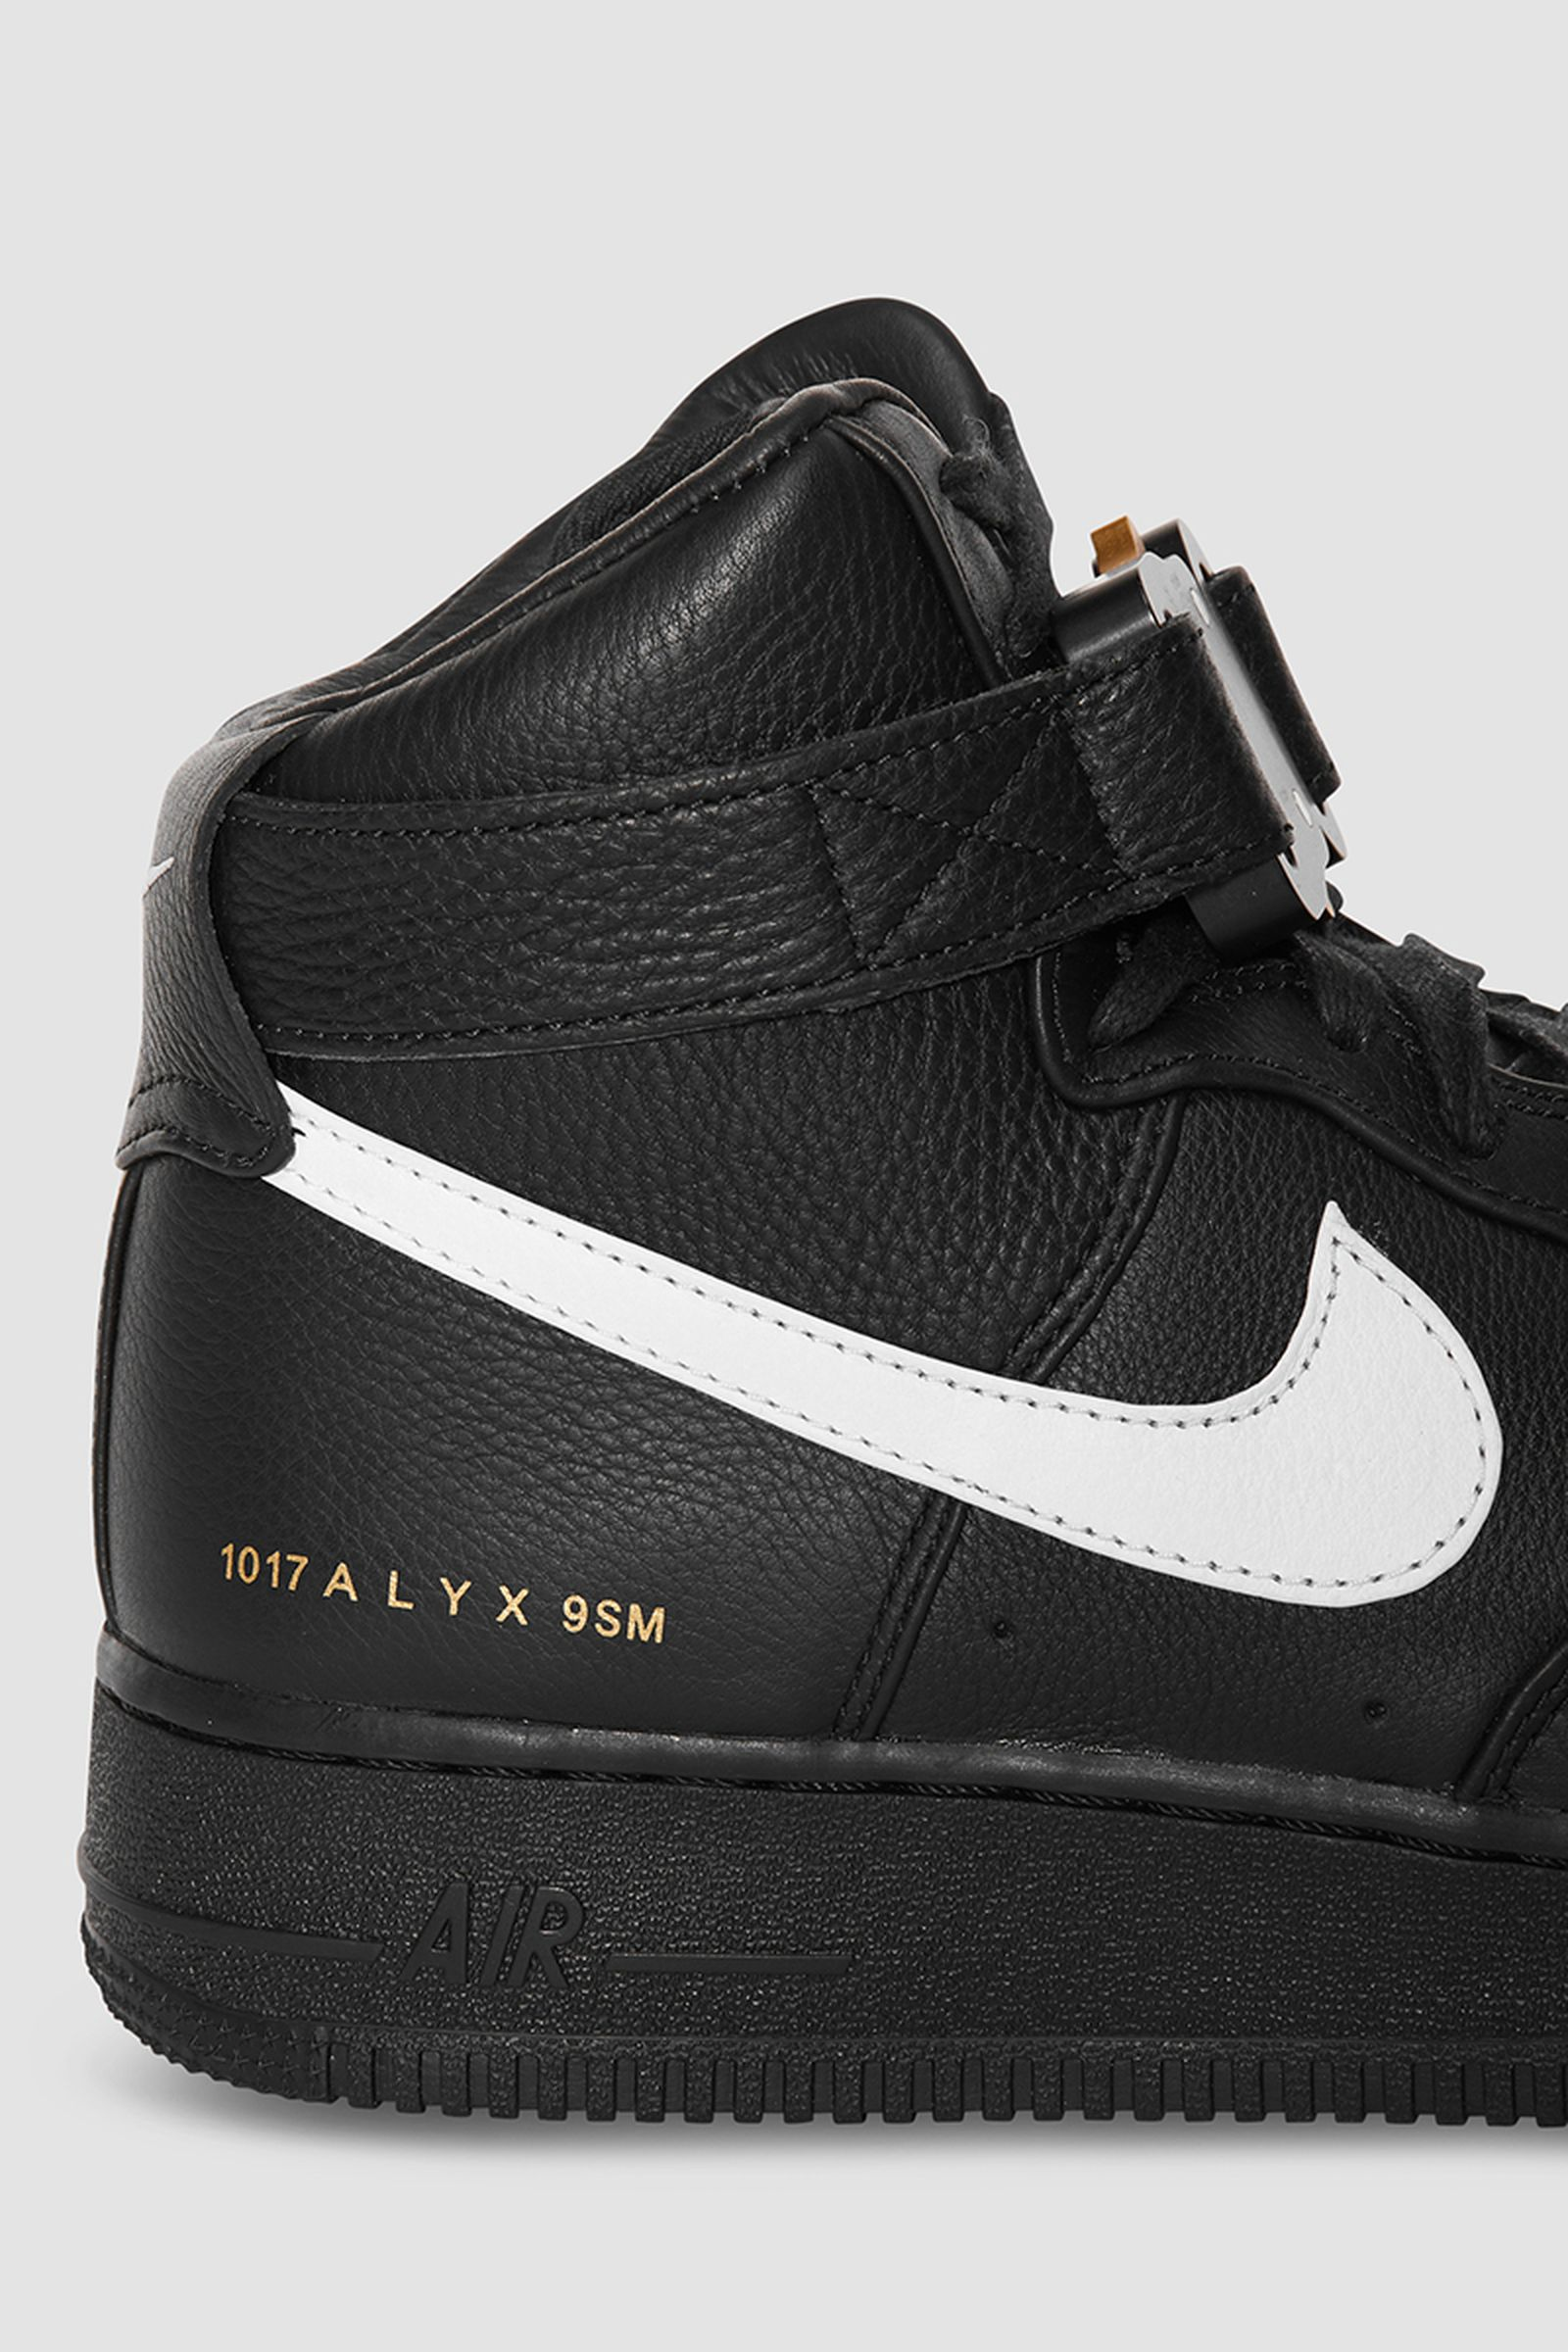 alyx-nike-air-force-1-high-release-date-price-03